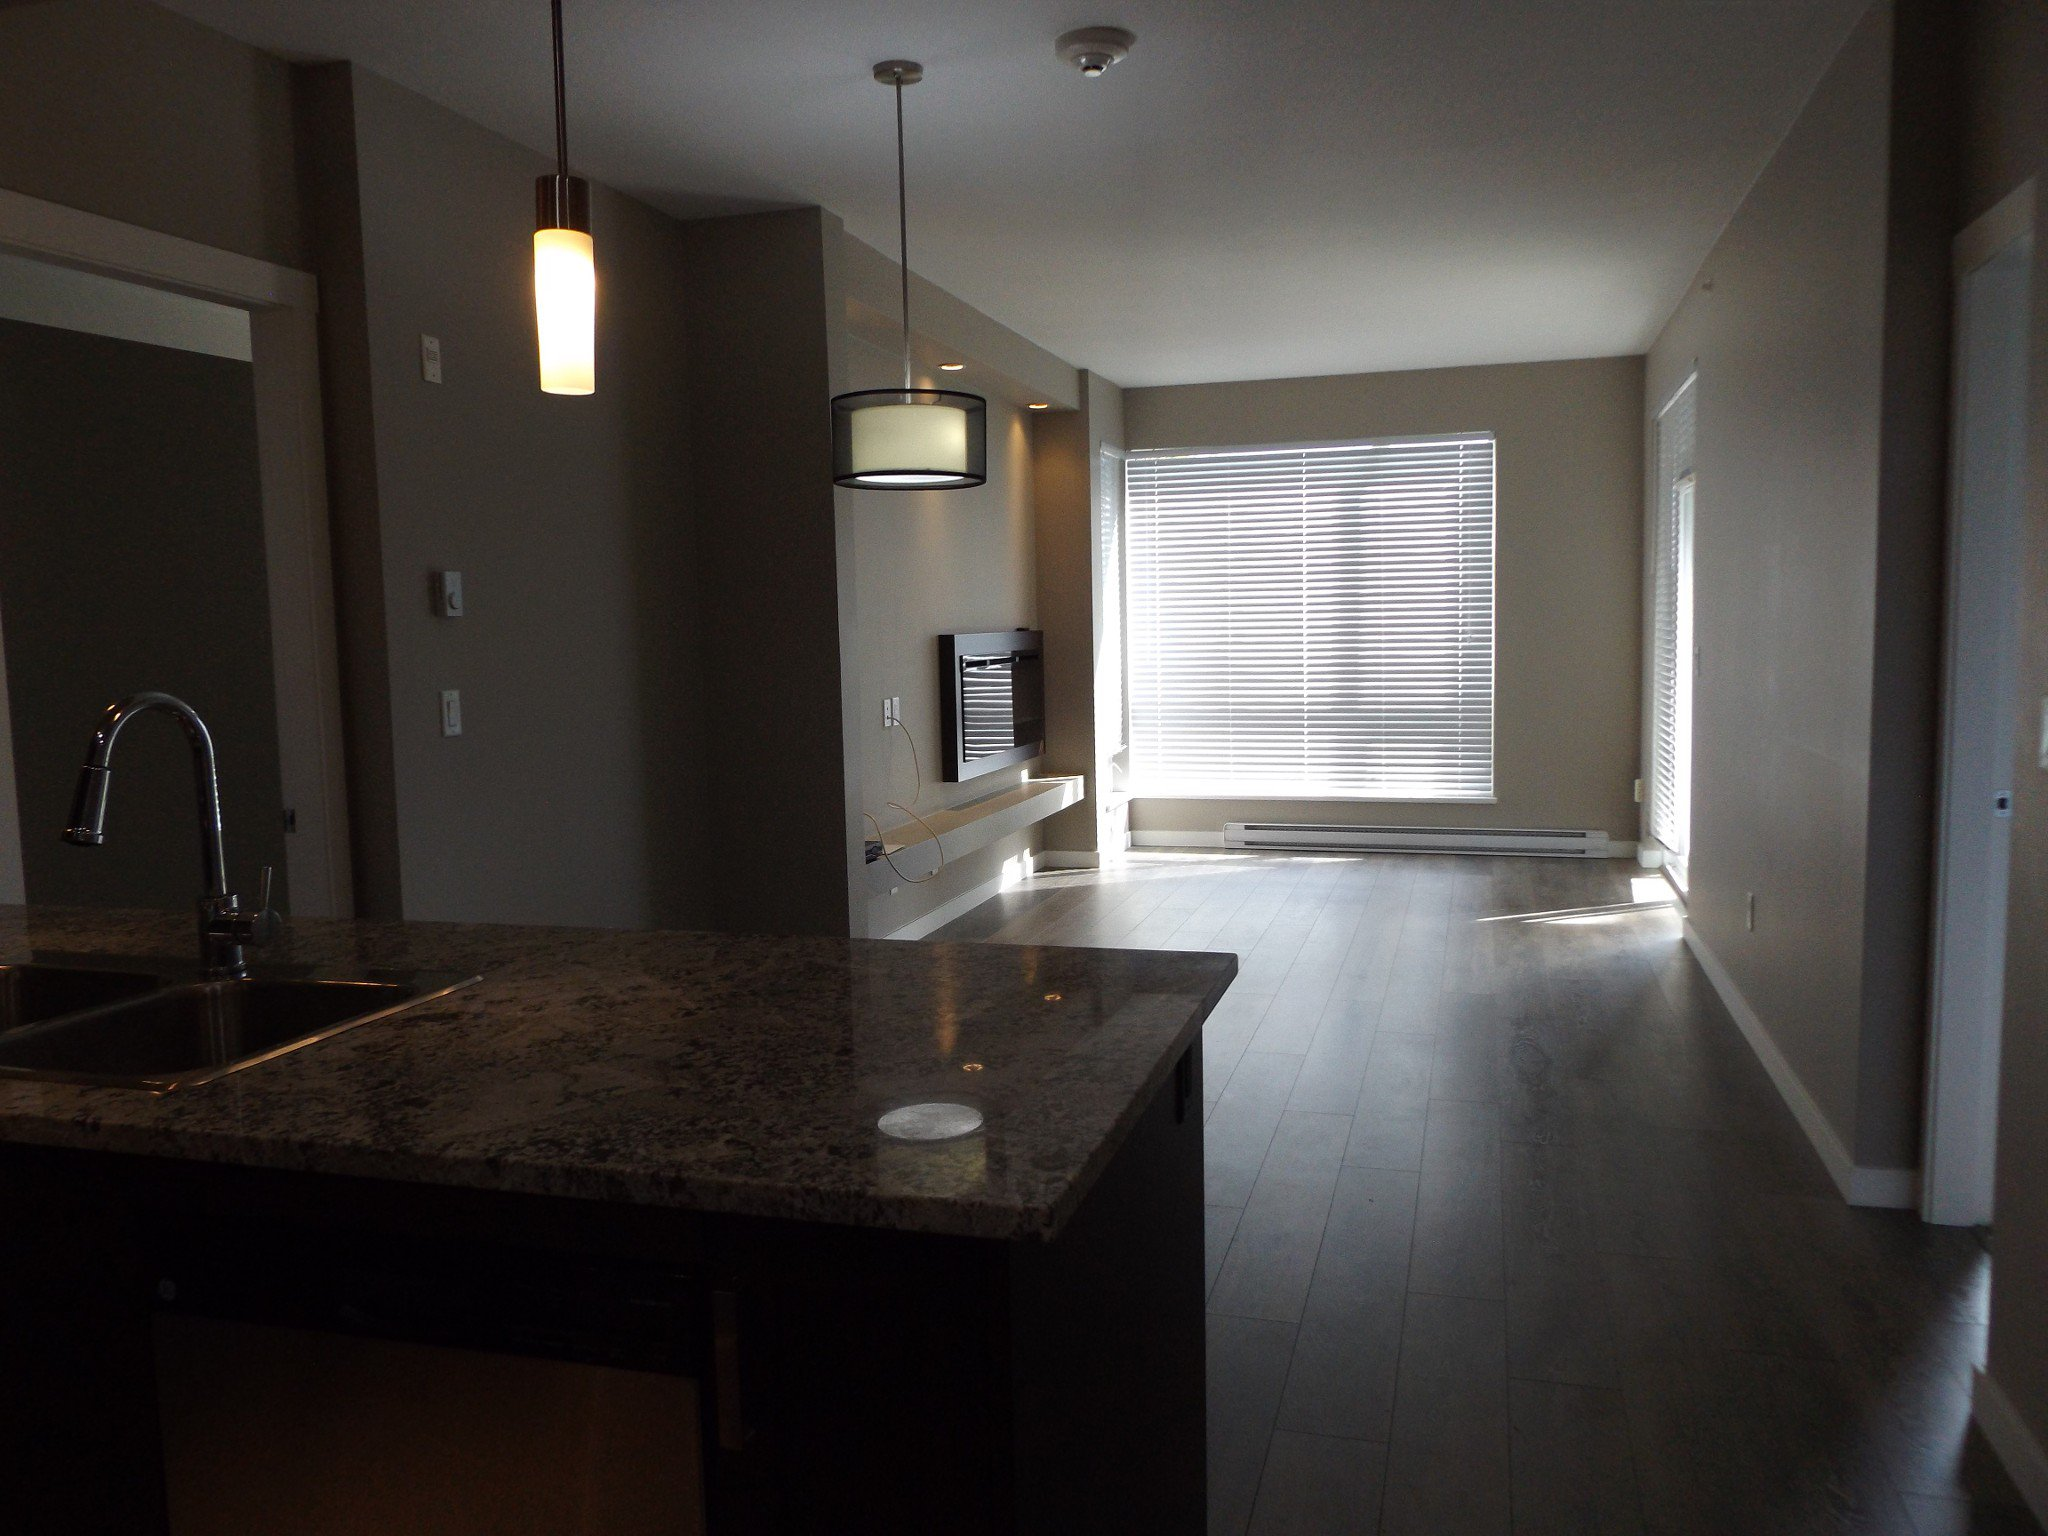 Photo 4: Photos: #308 2242 Whatcom Rd in Abbotsford: Abbotsford East Condo for rent